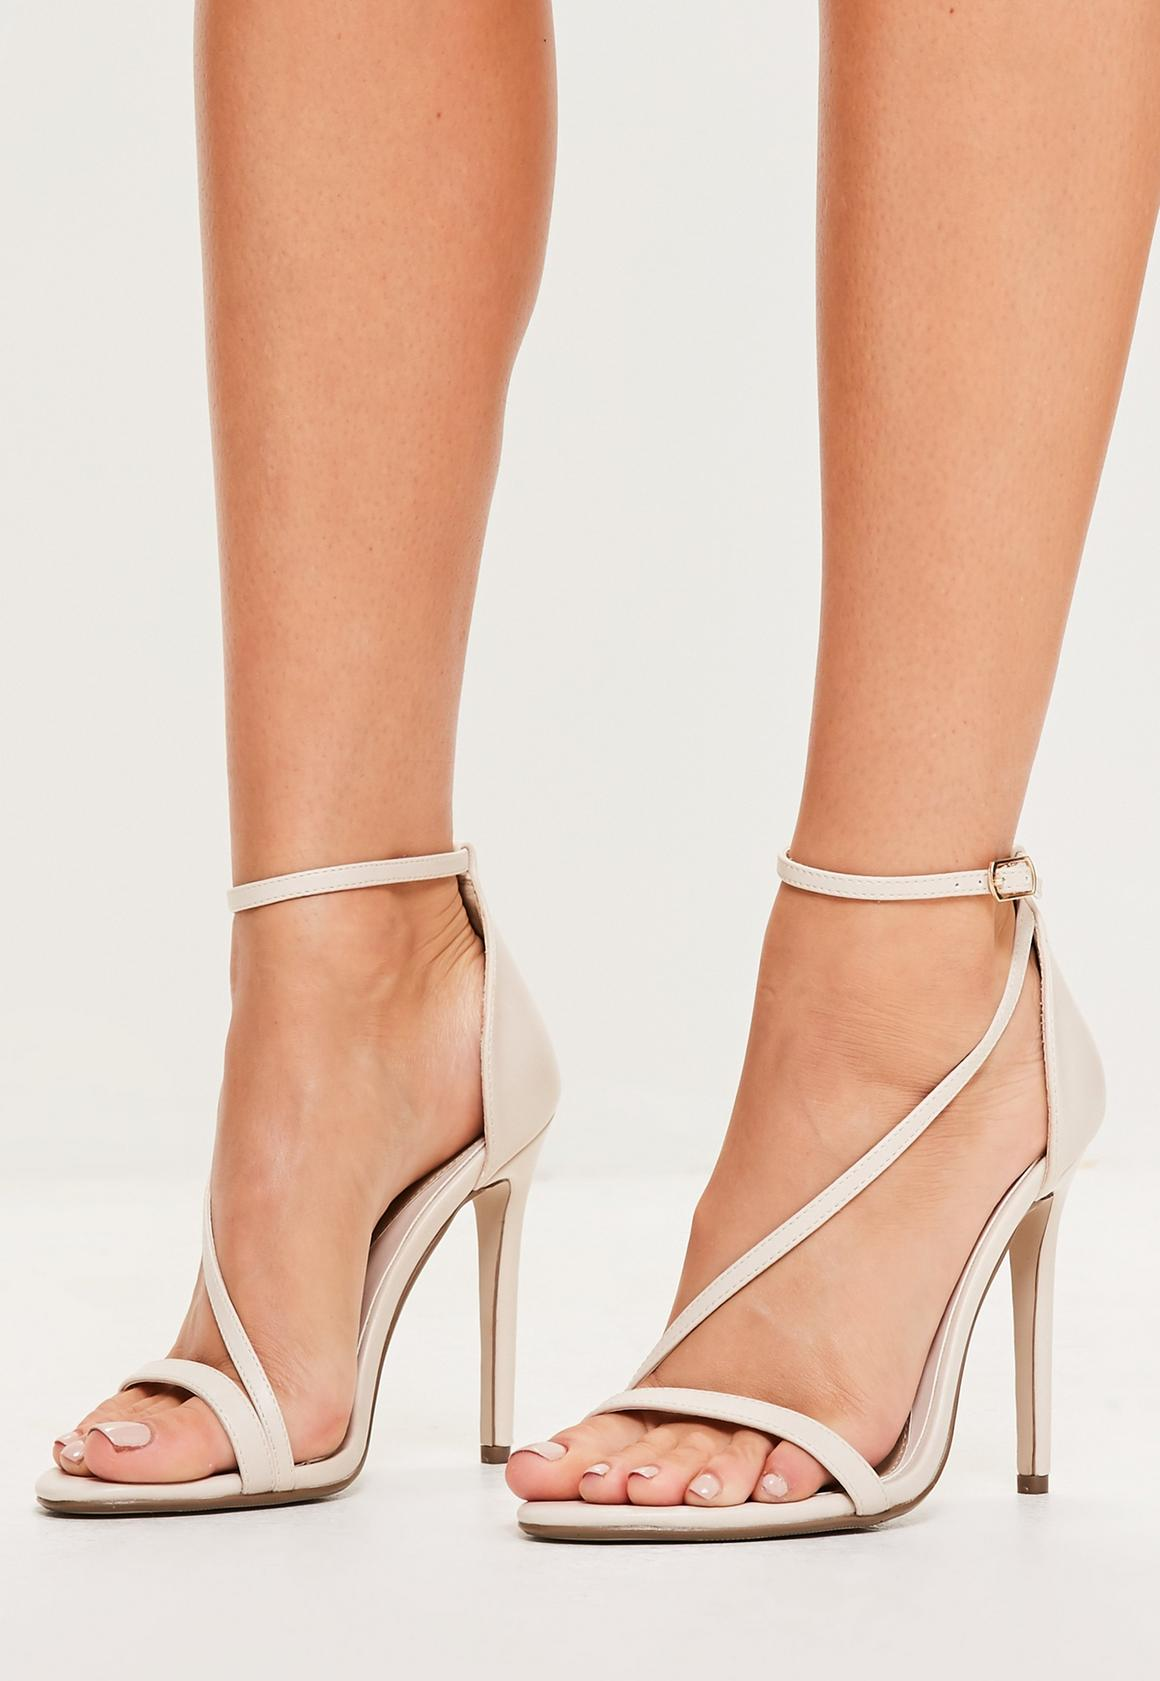 Nude Asymmetric Strappy Sandals | Missguided Ireland